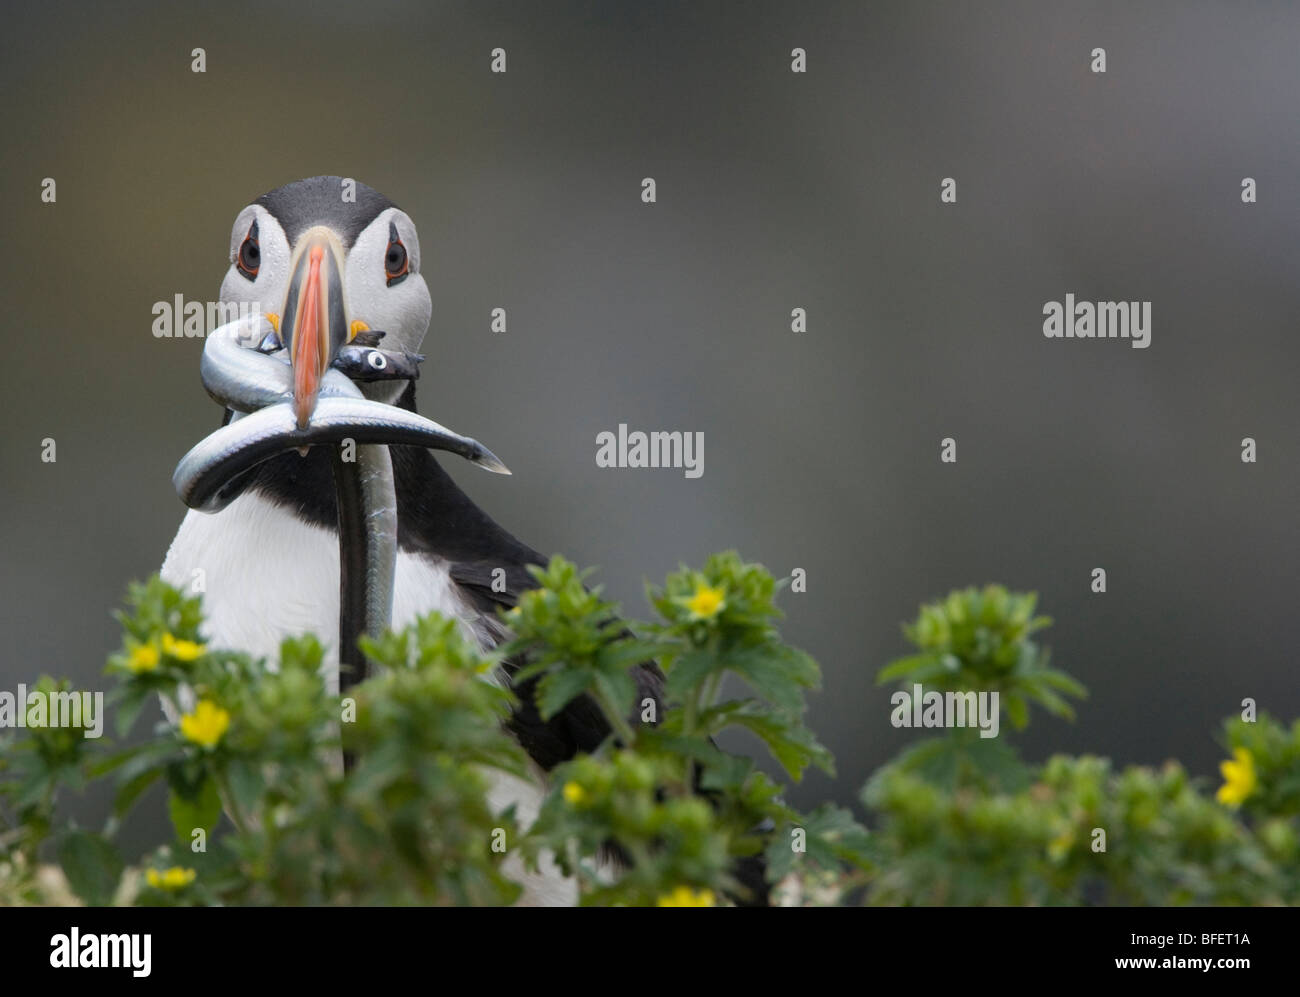 Atlantic puffin (Fratercula arctica) breeding adult with sandlance (Ammodytes americanus) in its beak Gull Island - Stock Image